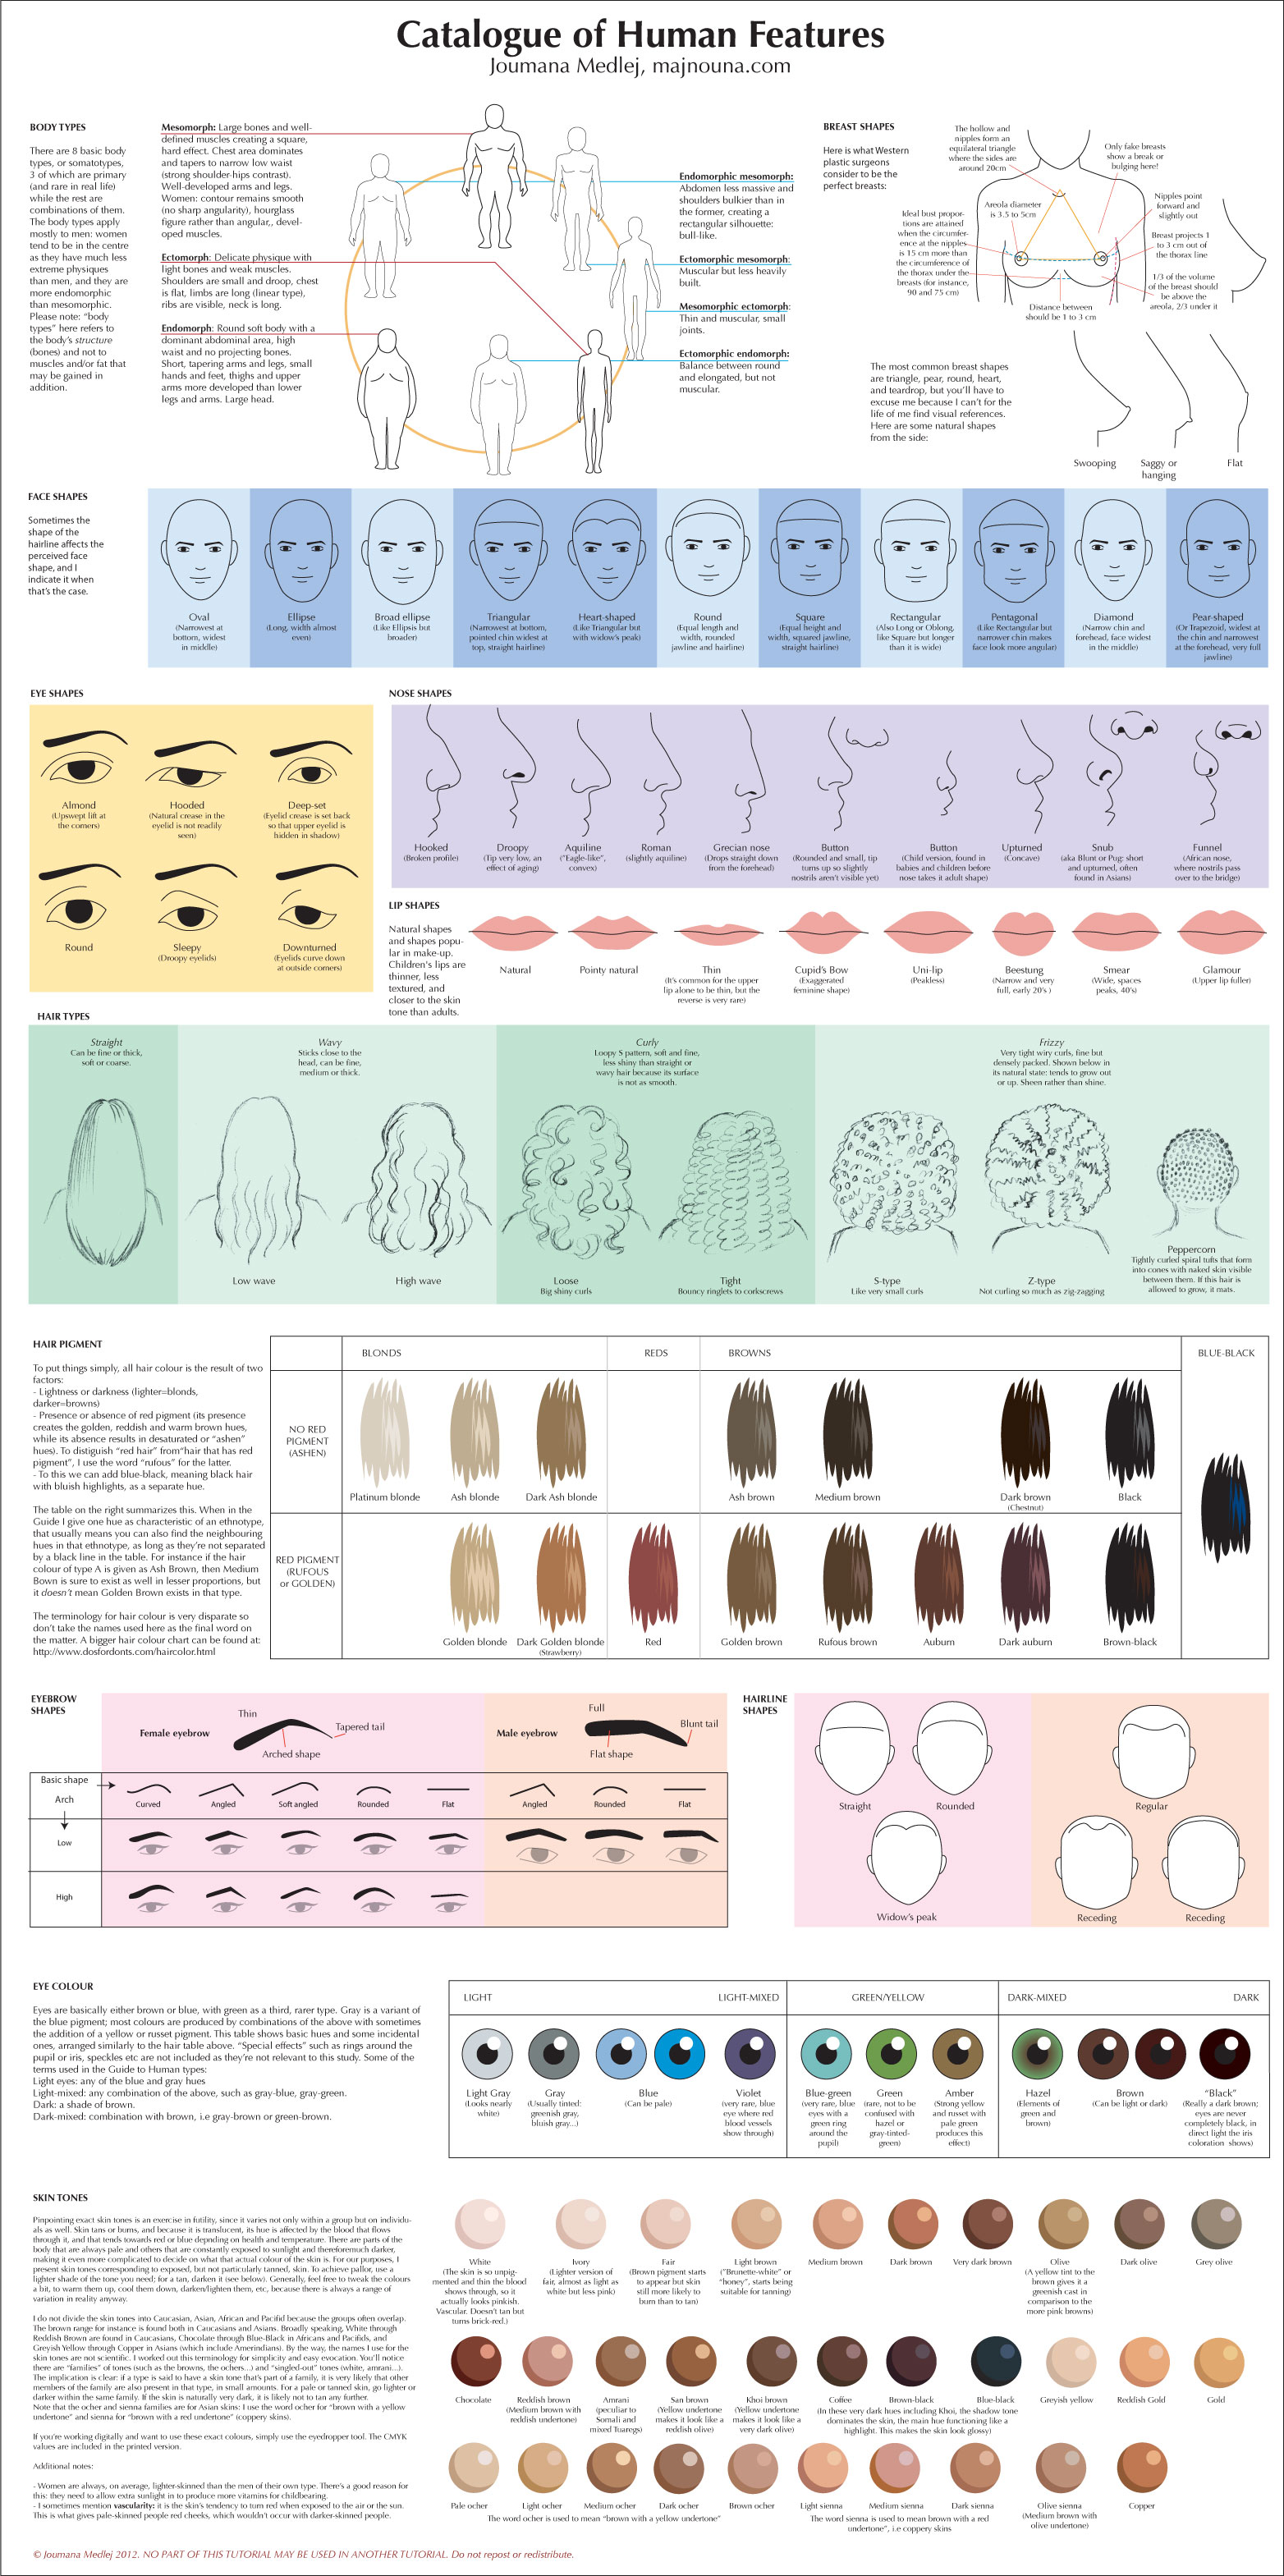 Catalogue of Human Features